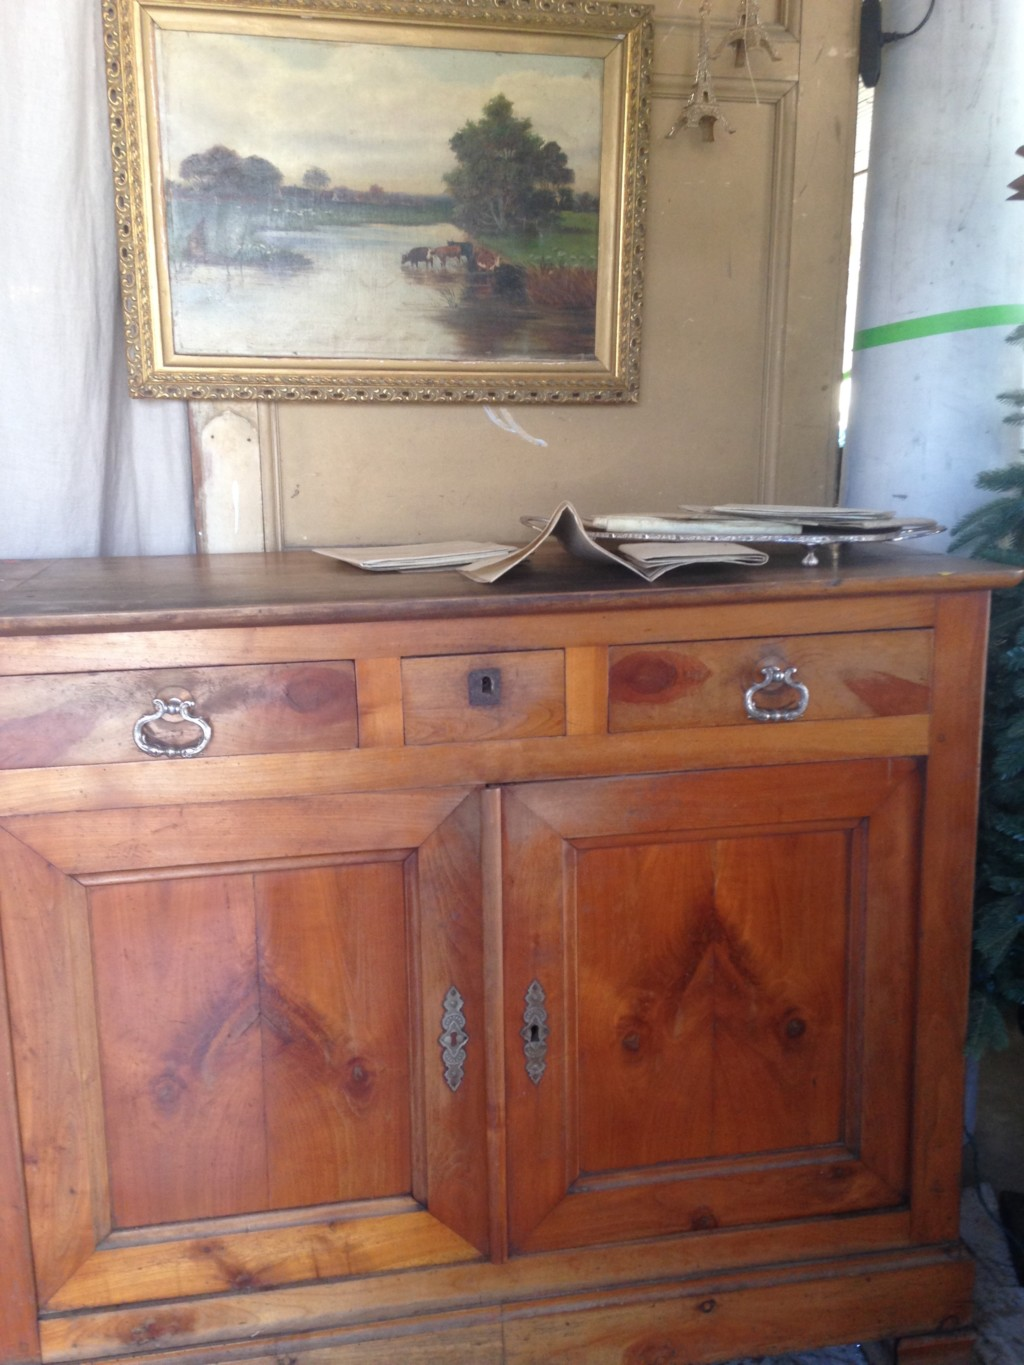 The proportions, lines, and patina of this beautiful French chest make it a beauty.